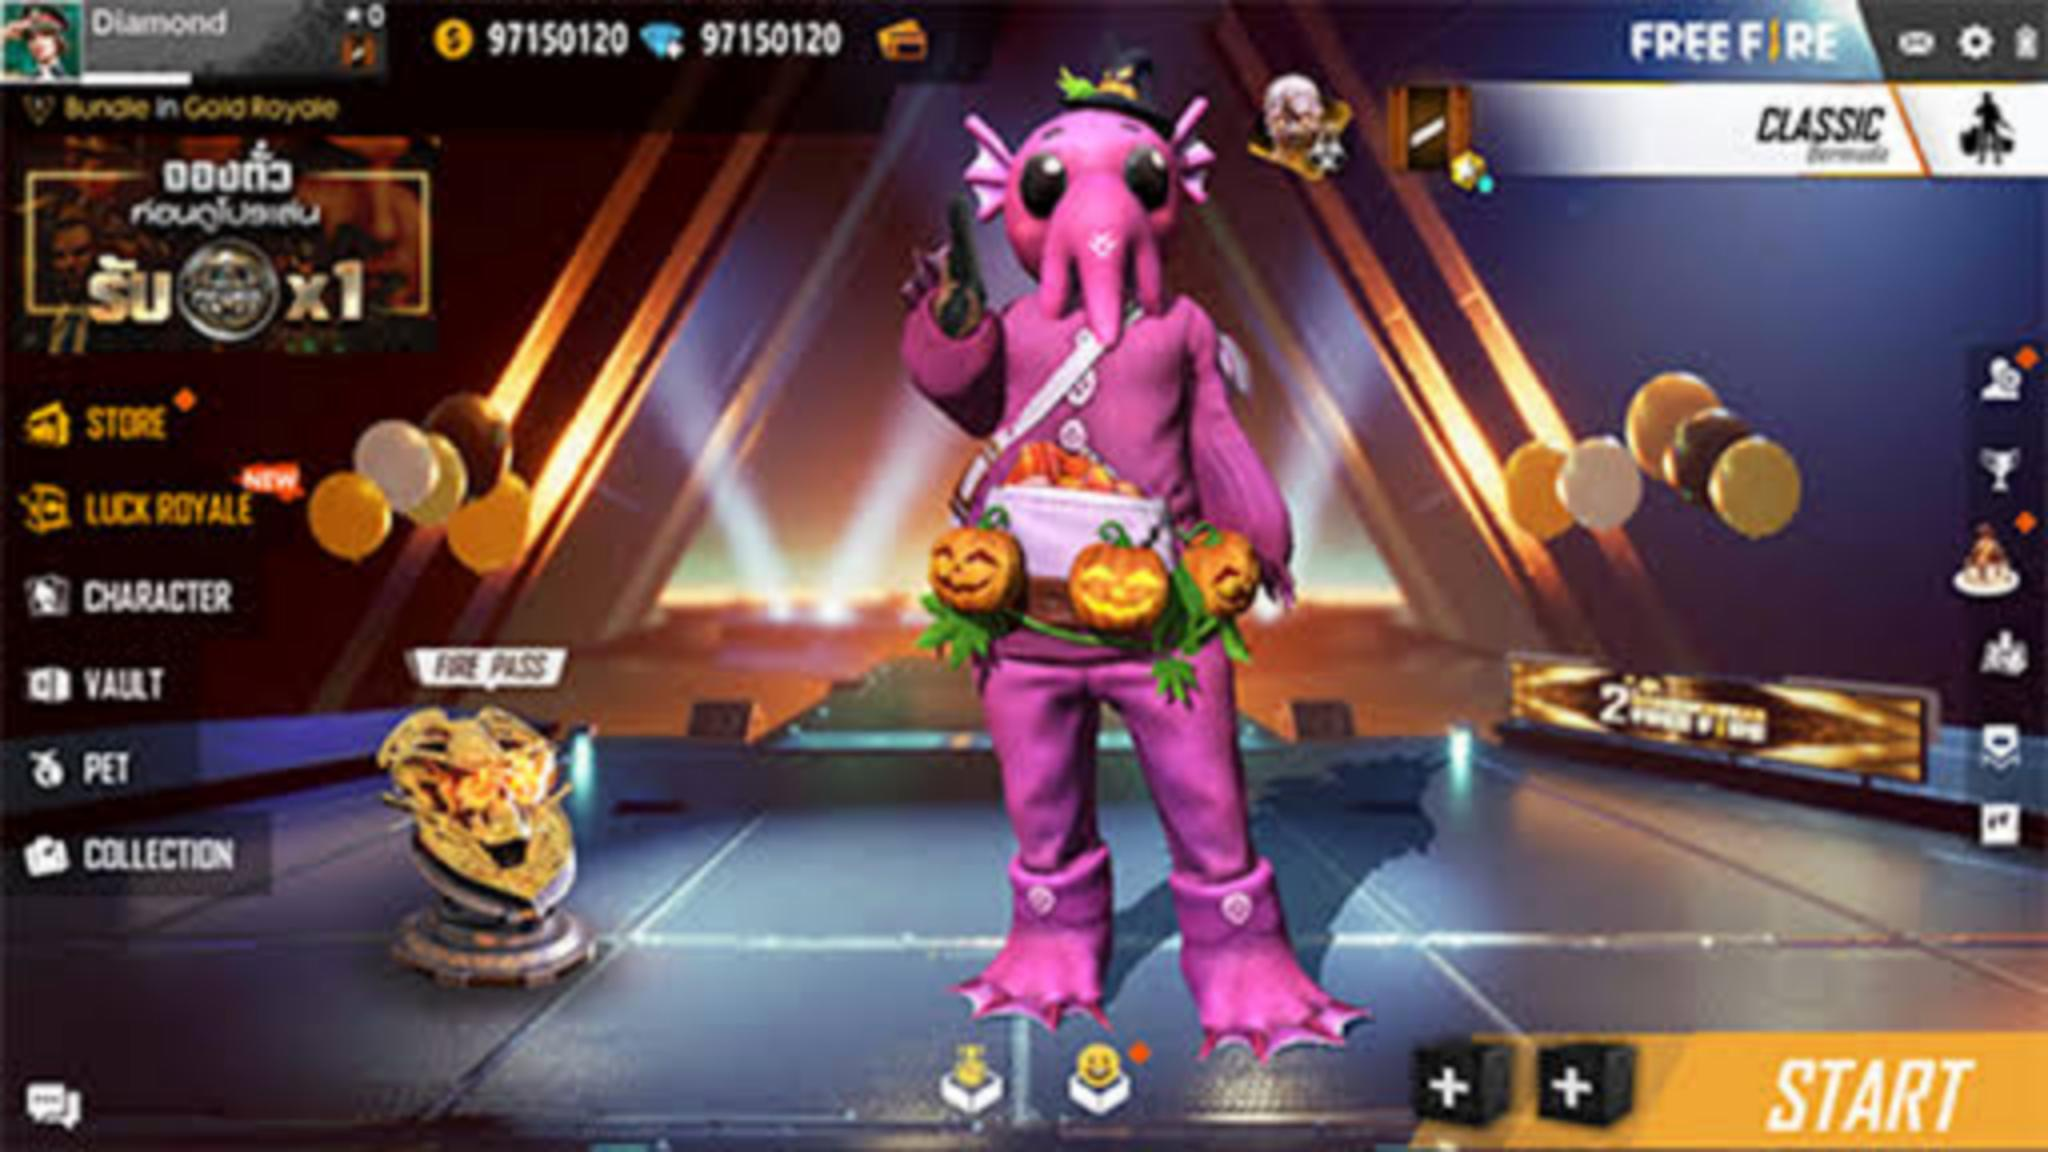 Free Fire Unlimited Diamonds 9999 For Android Apk Download